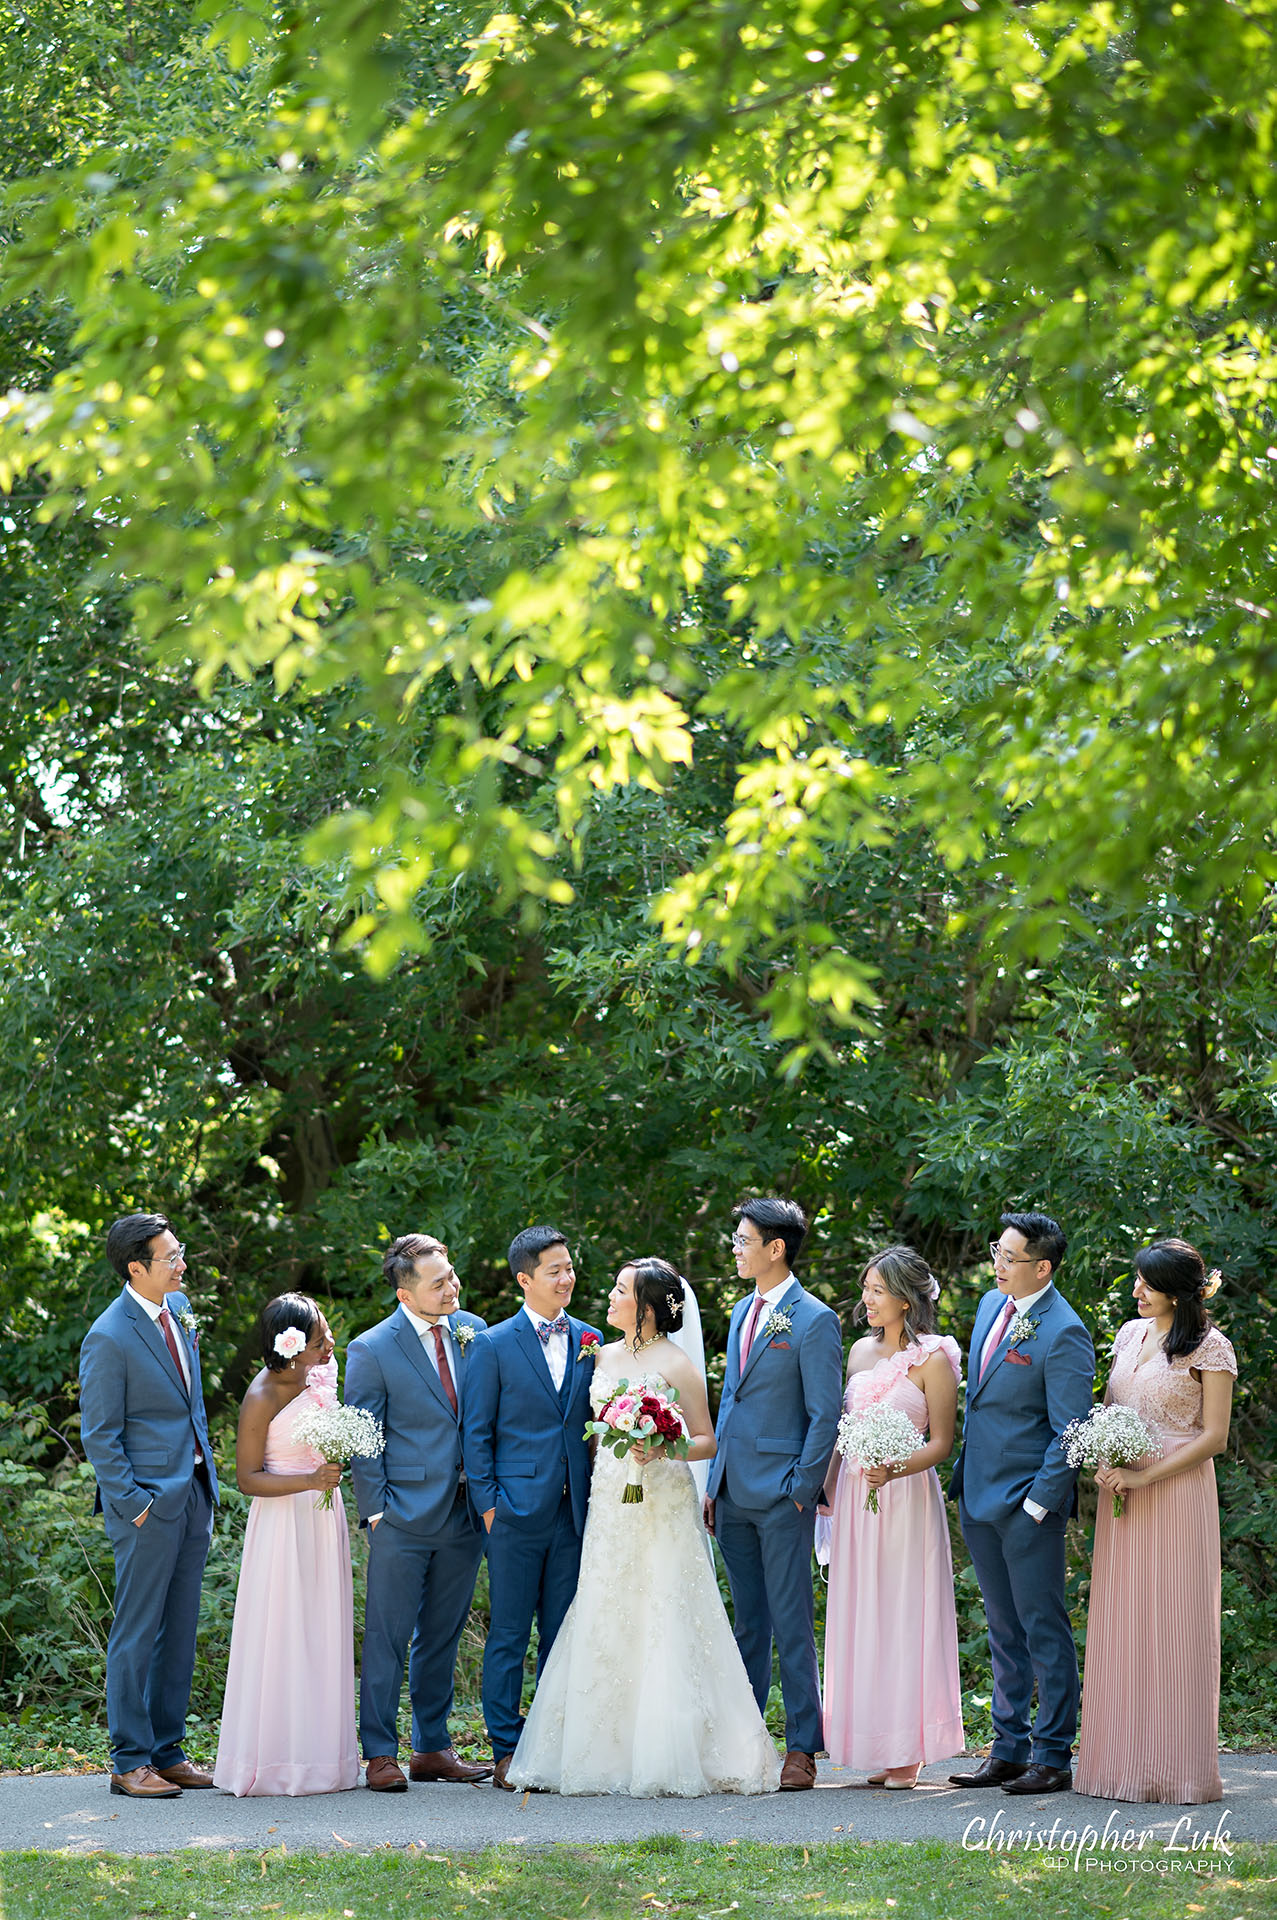 Christopher Luk Toronto Wedding Photographer Bridle Trail Baptist Church Unionville Main Street Crystal Fountain Event Venue Bride Groom Natural Photojournalistic Candid Creative Portrait Session Pictures Bridal Party Best Man Groomsmen Maid of Honour Bridesmaids Forest Vertical Portrait